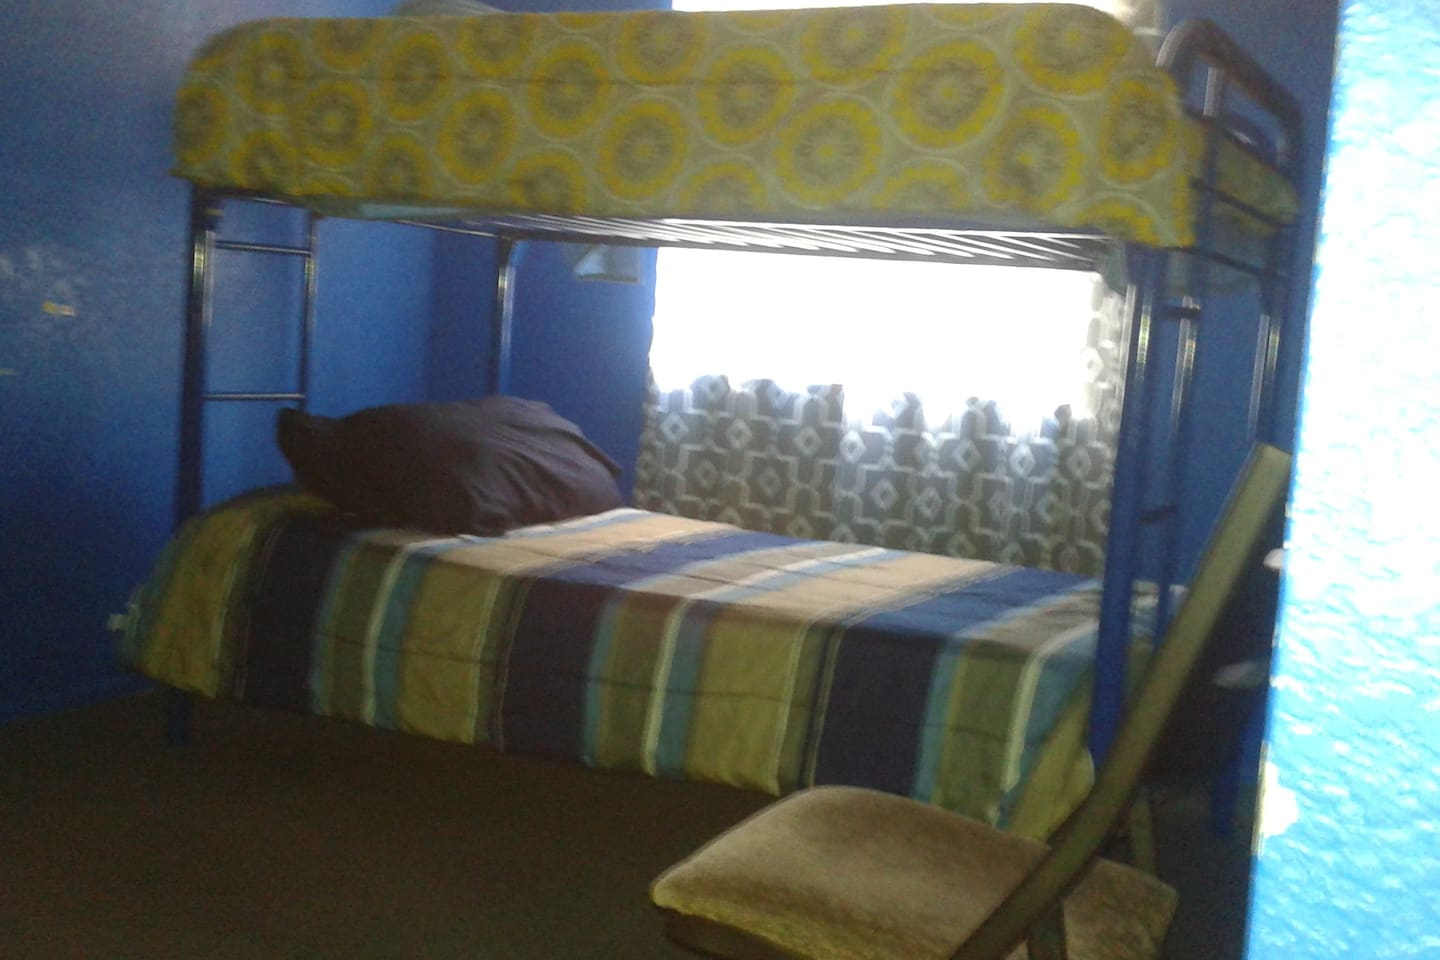 Must note there are 3 total beds in this room. Bunk beds and a single day bed.